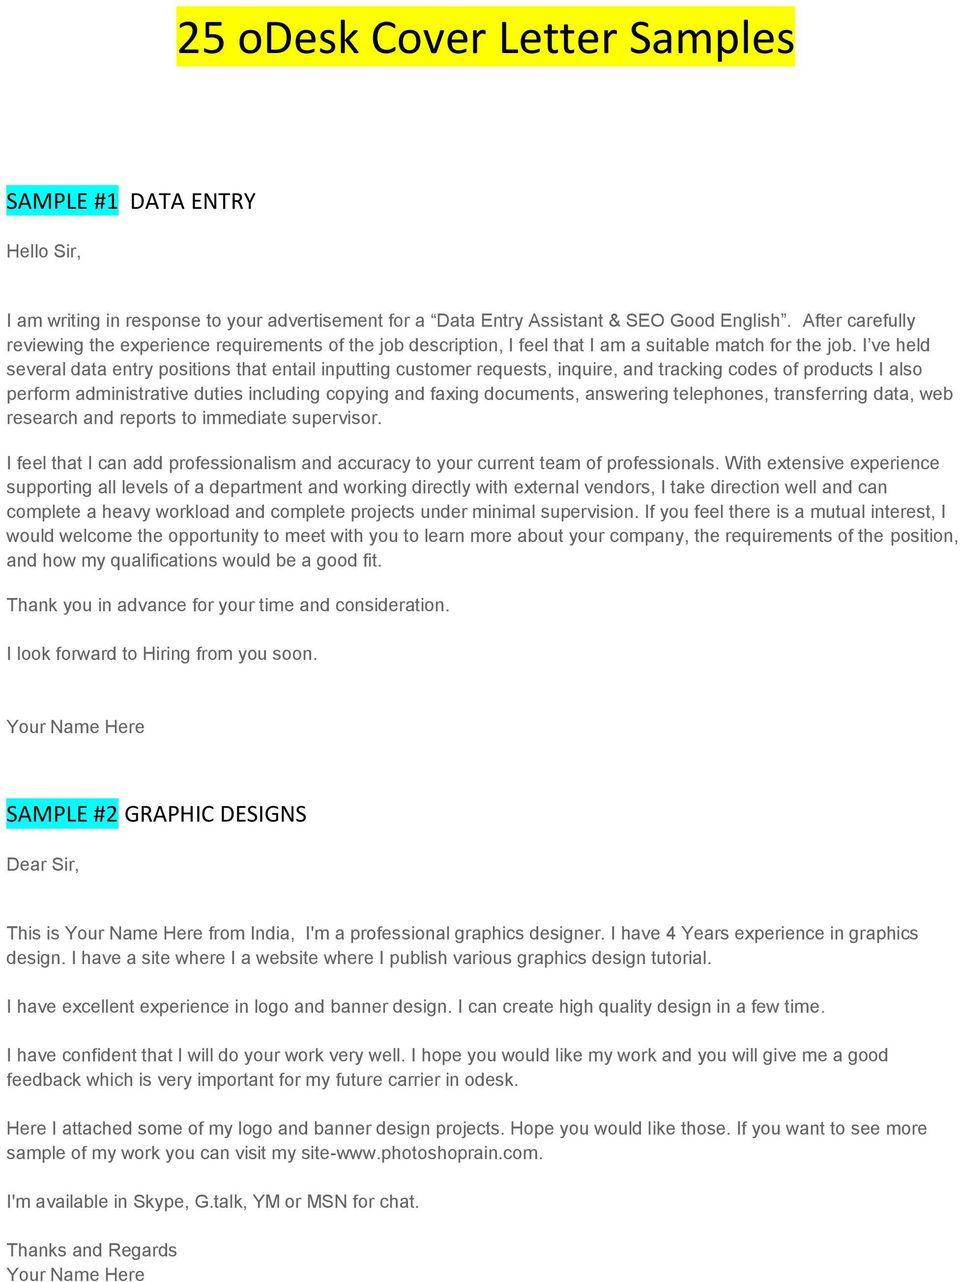 cover letter for odesk transcription